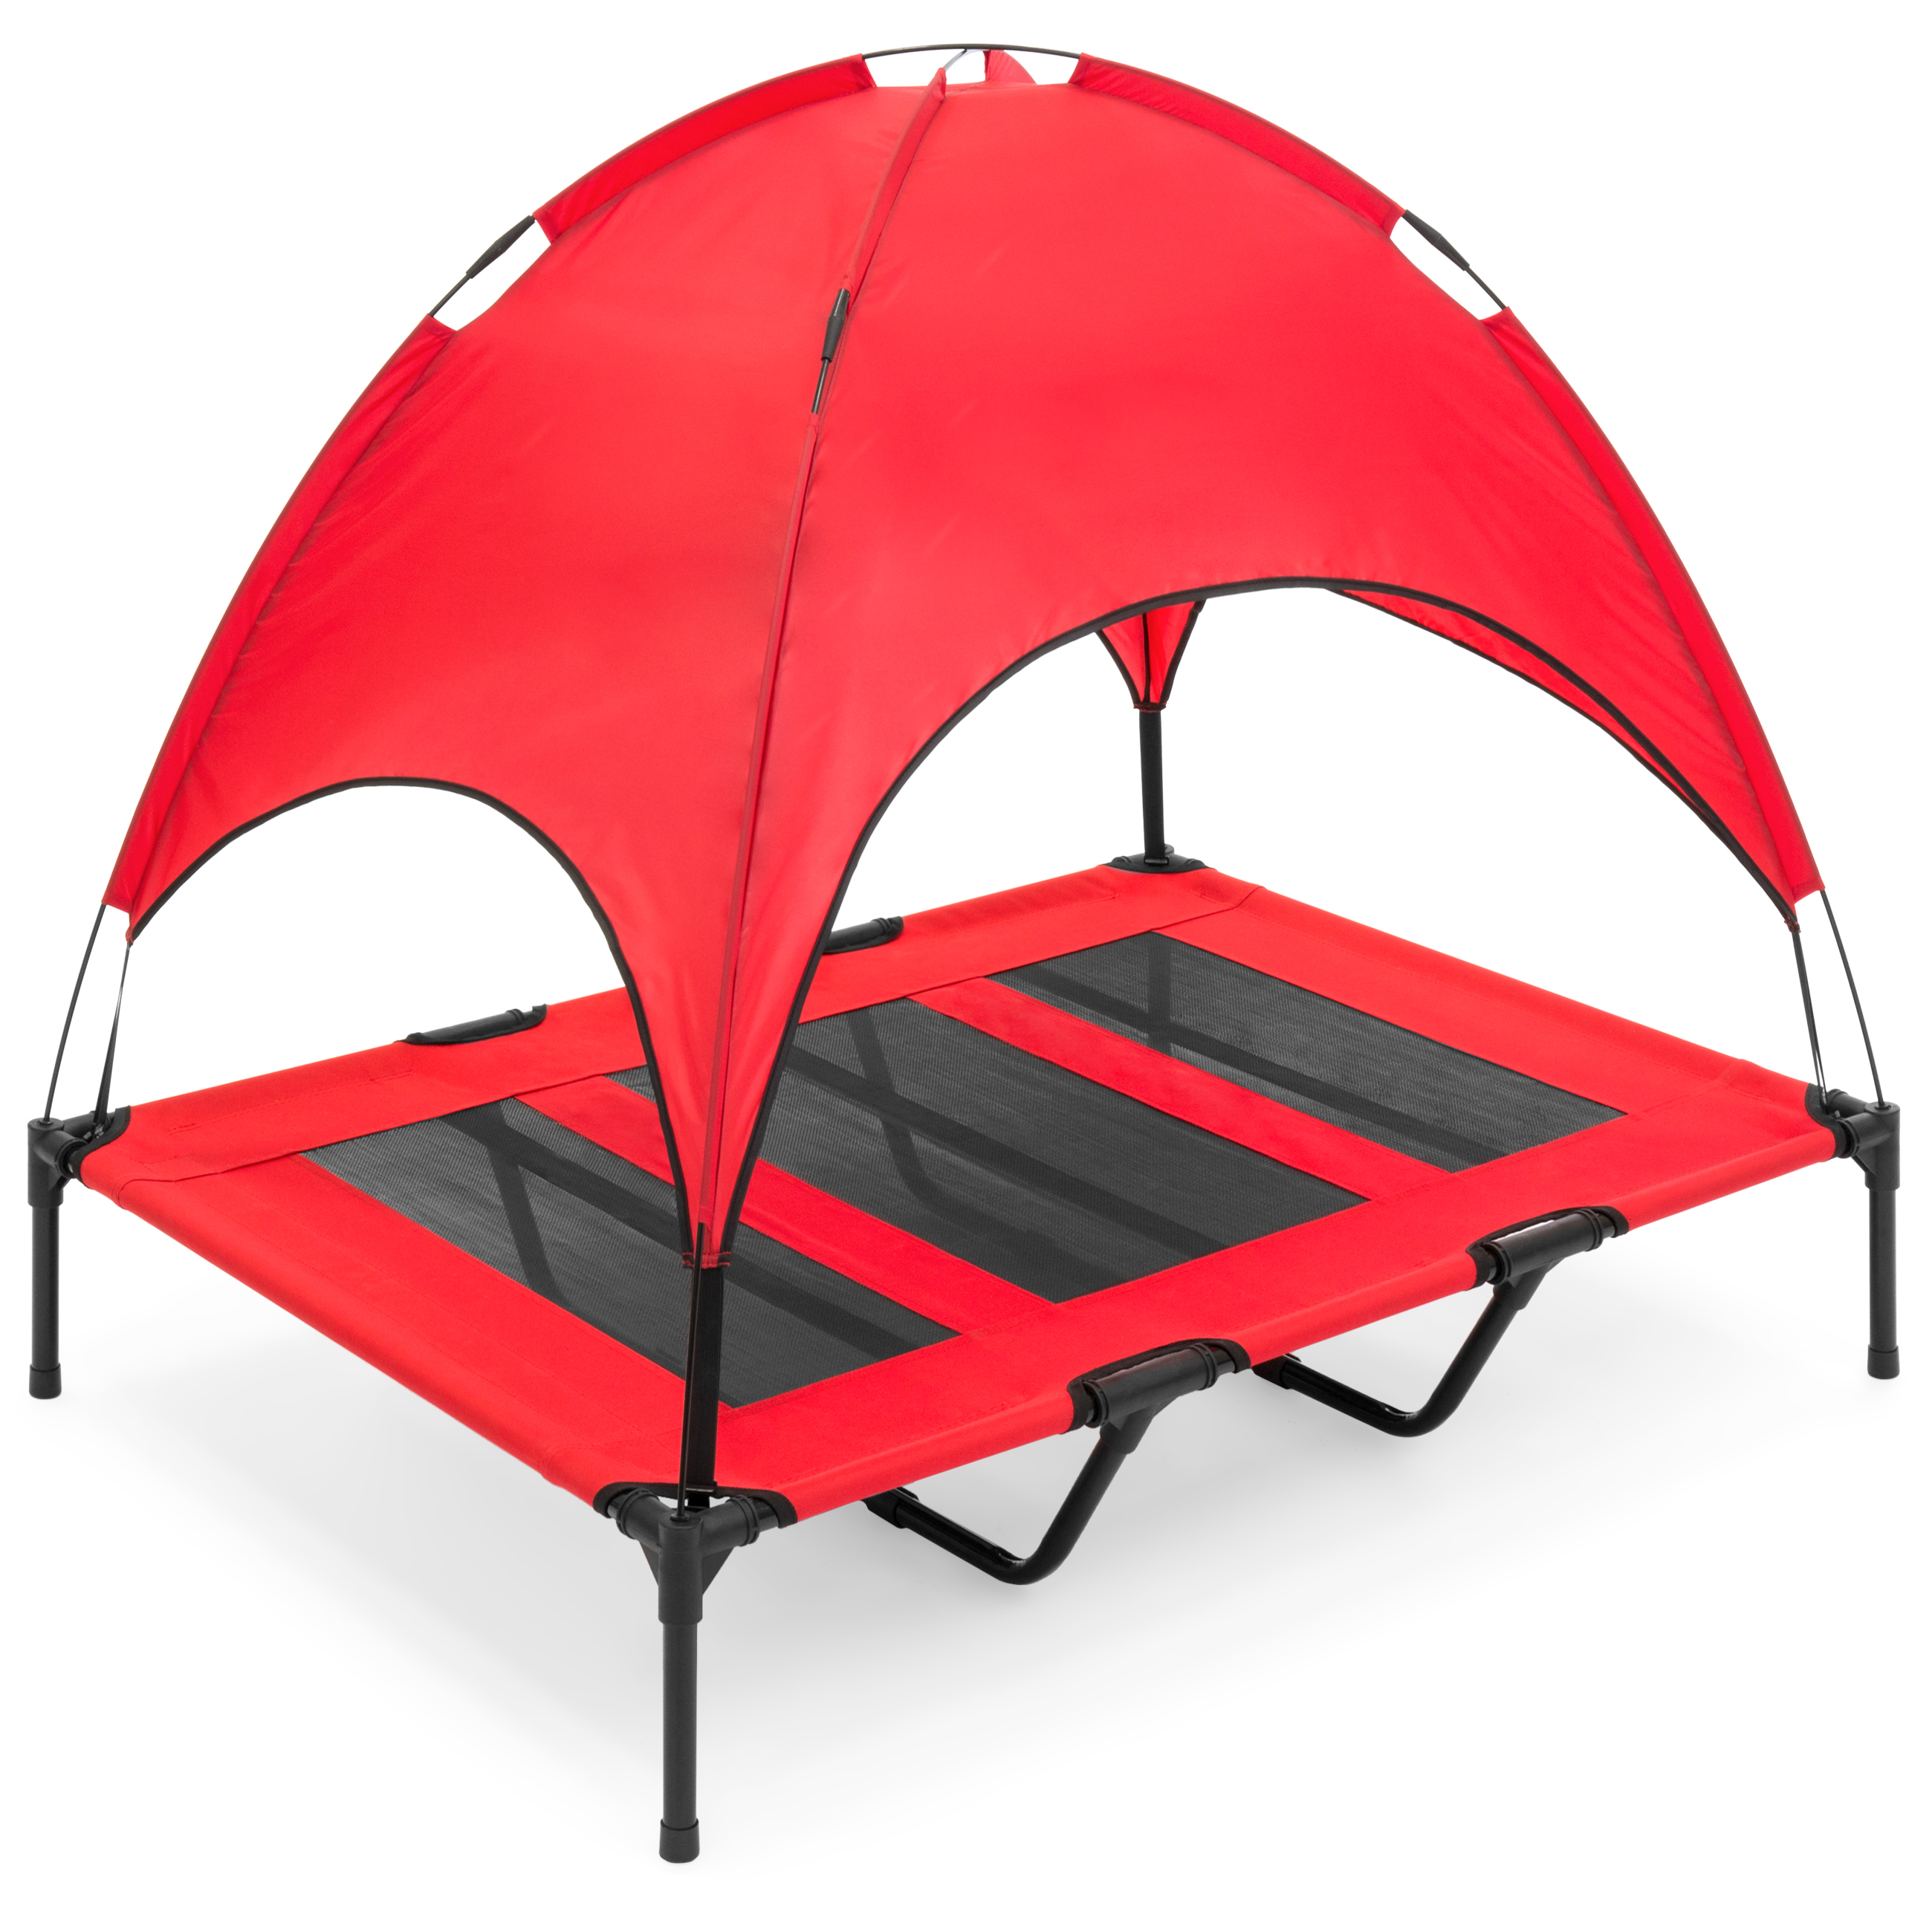 Best Choice Products 48in Raised Mesh Cot Cooling Dog Bed w/ Removable Canopy Tent  sc 1 st  Walmart & Tent Cots